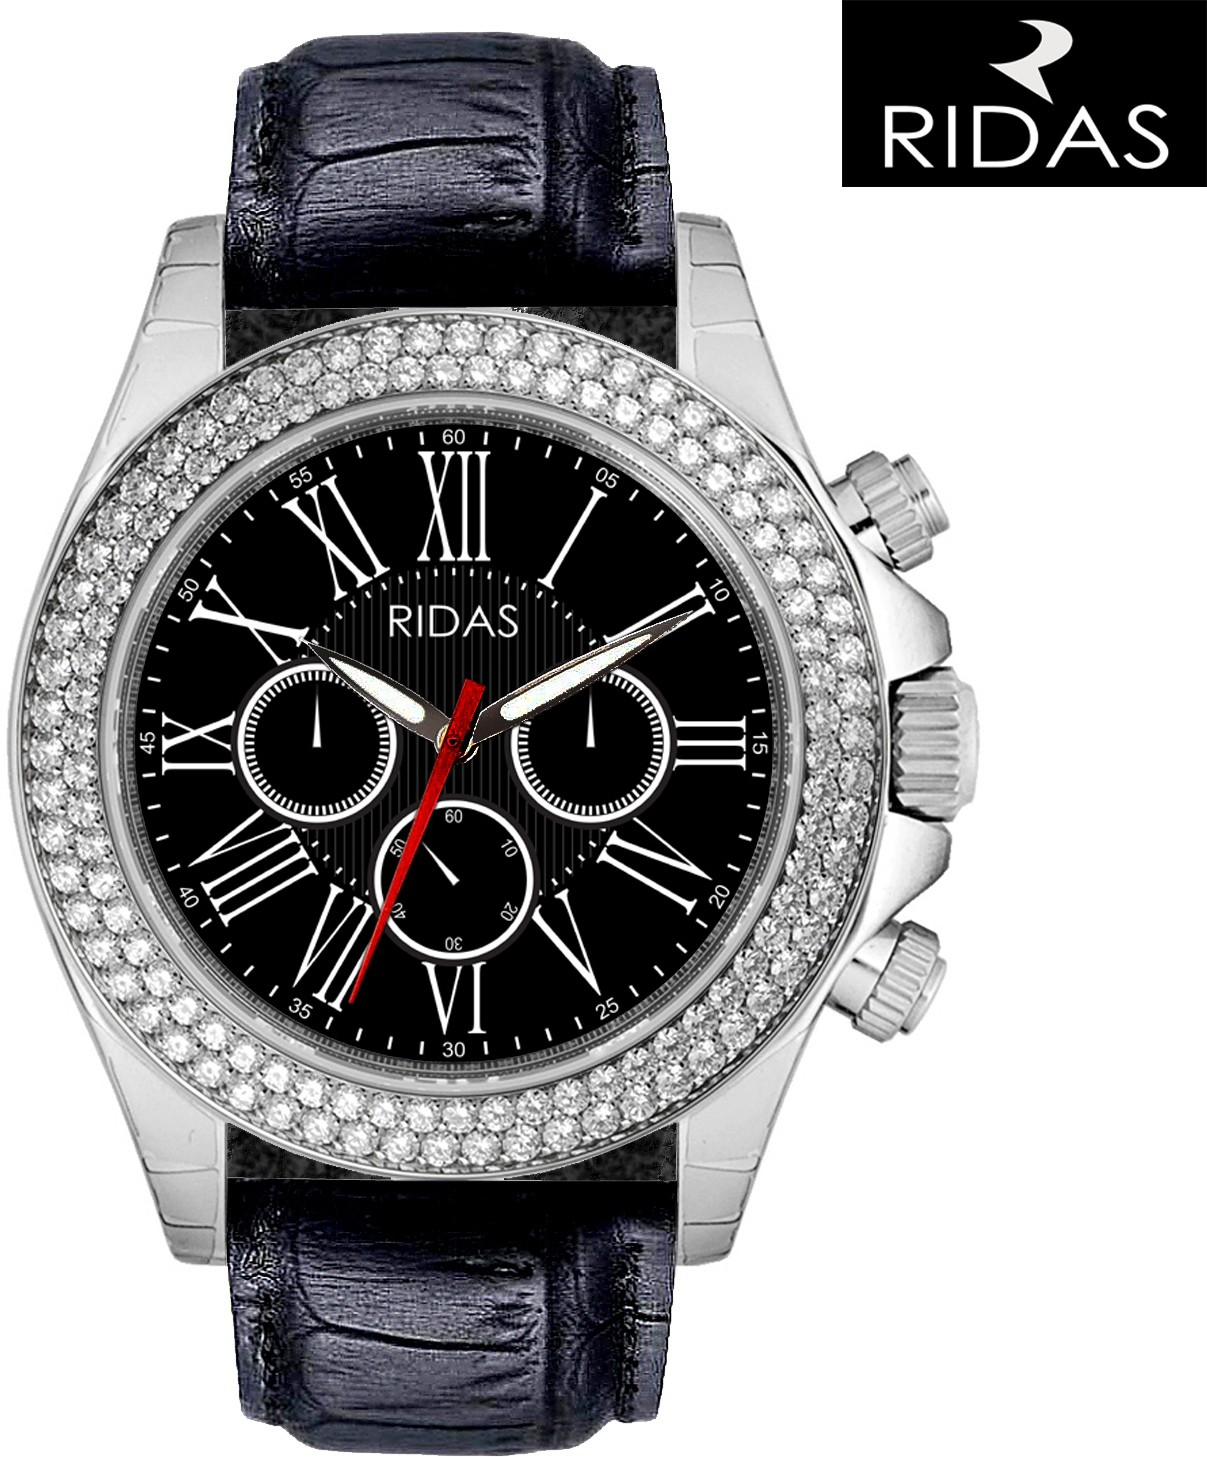 Deals - Delhi - Lois Caron & more <br> Wrist Watches<br> Category - watches<br> Business - Flipkart.com